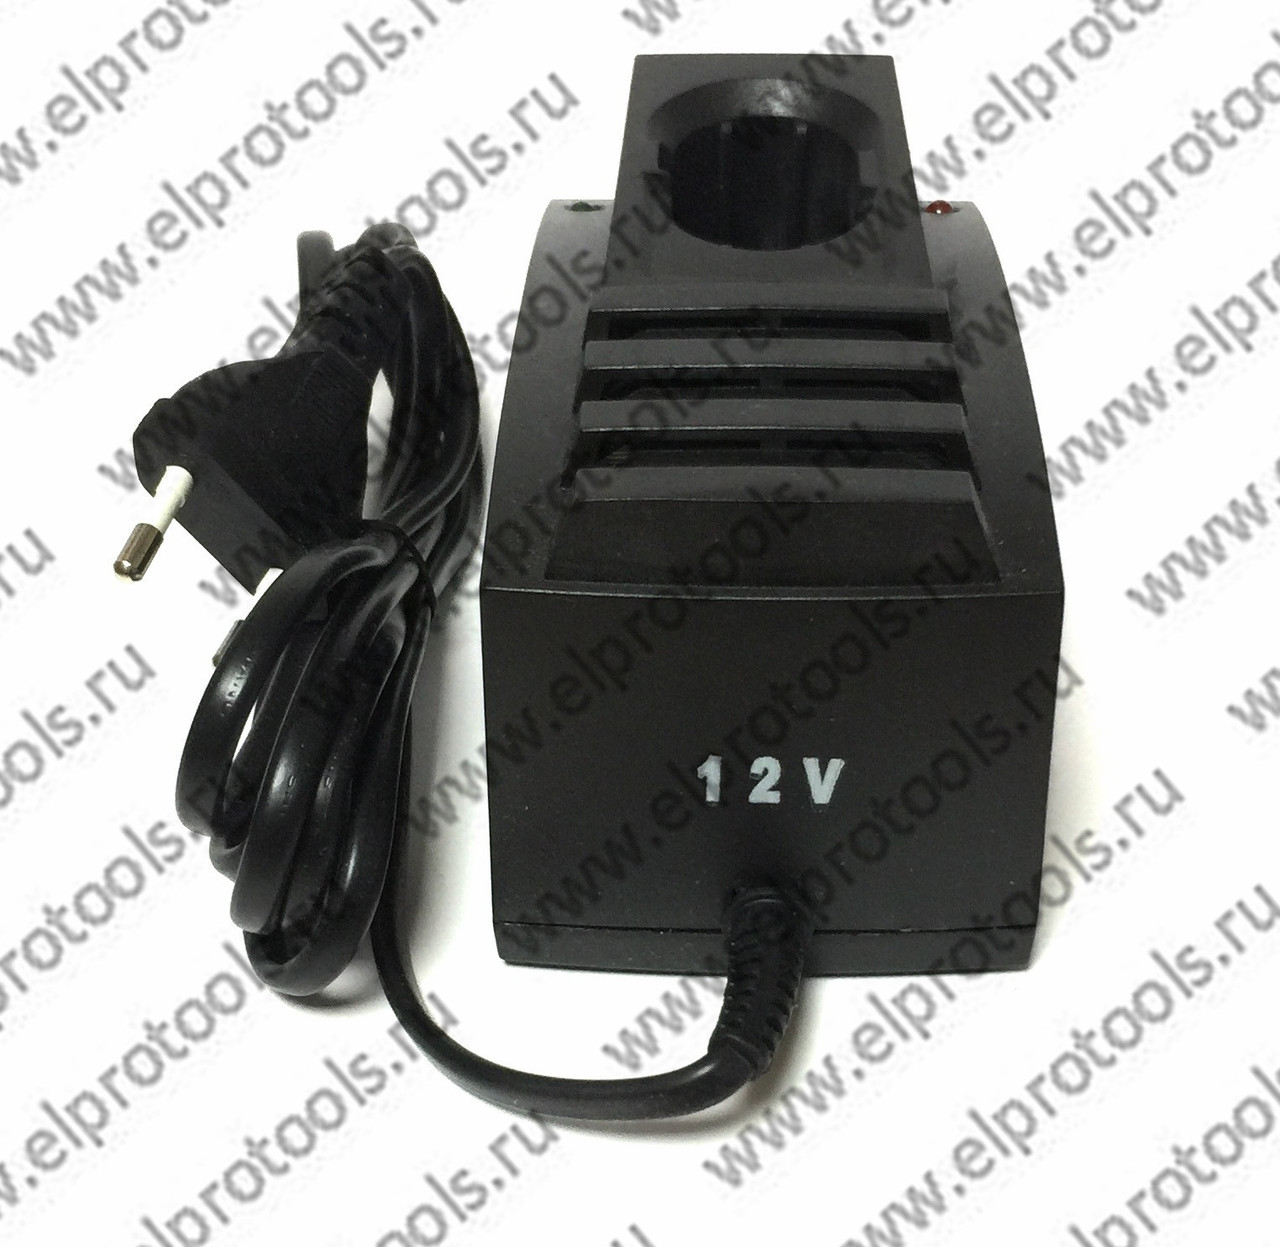 Charger for screwdrivers Interskol 12vда-12эр-01 title=